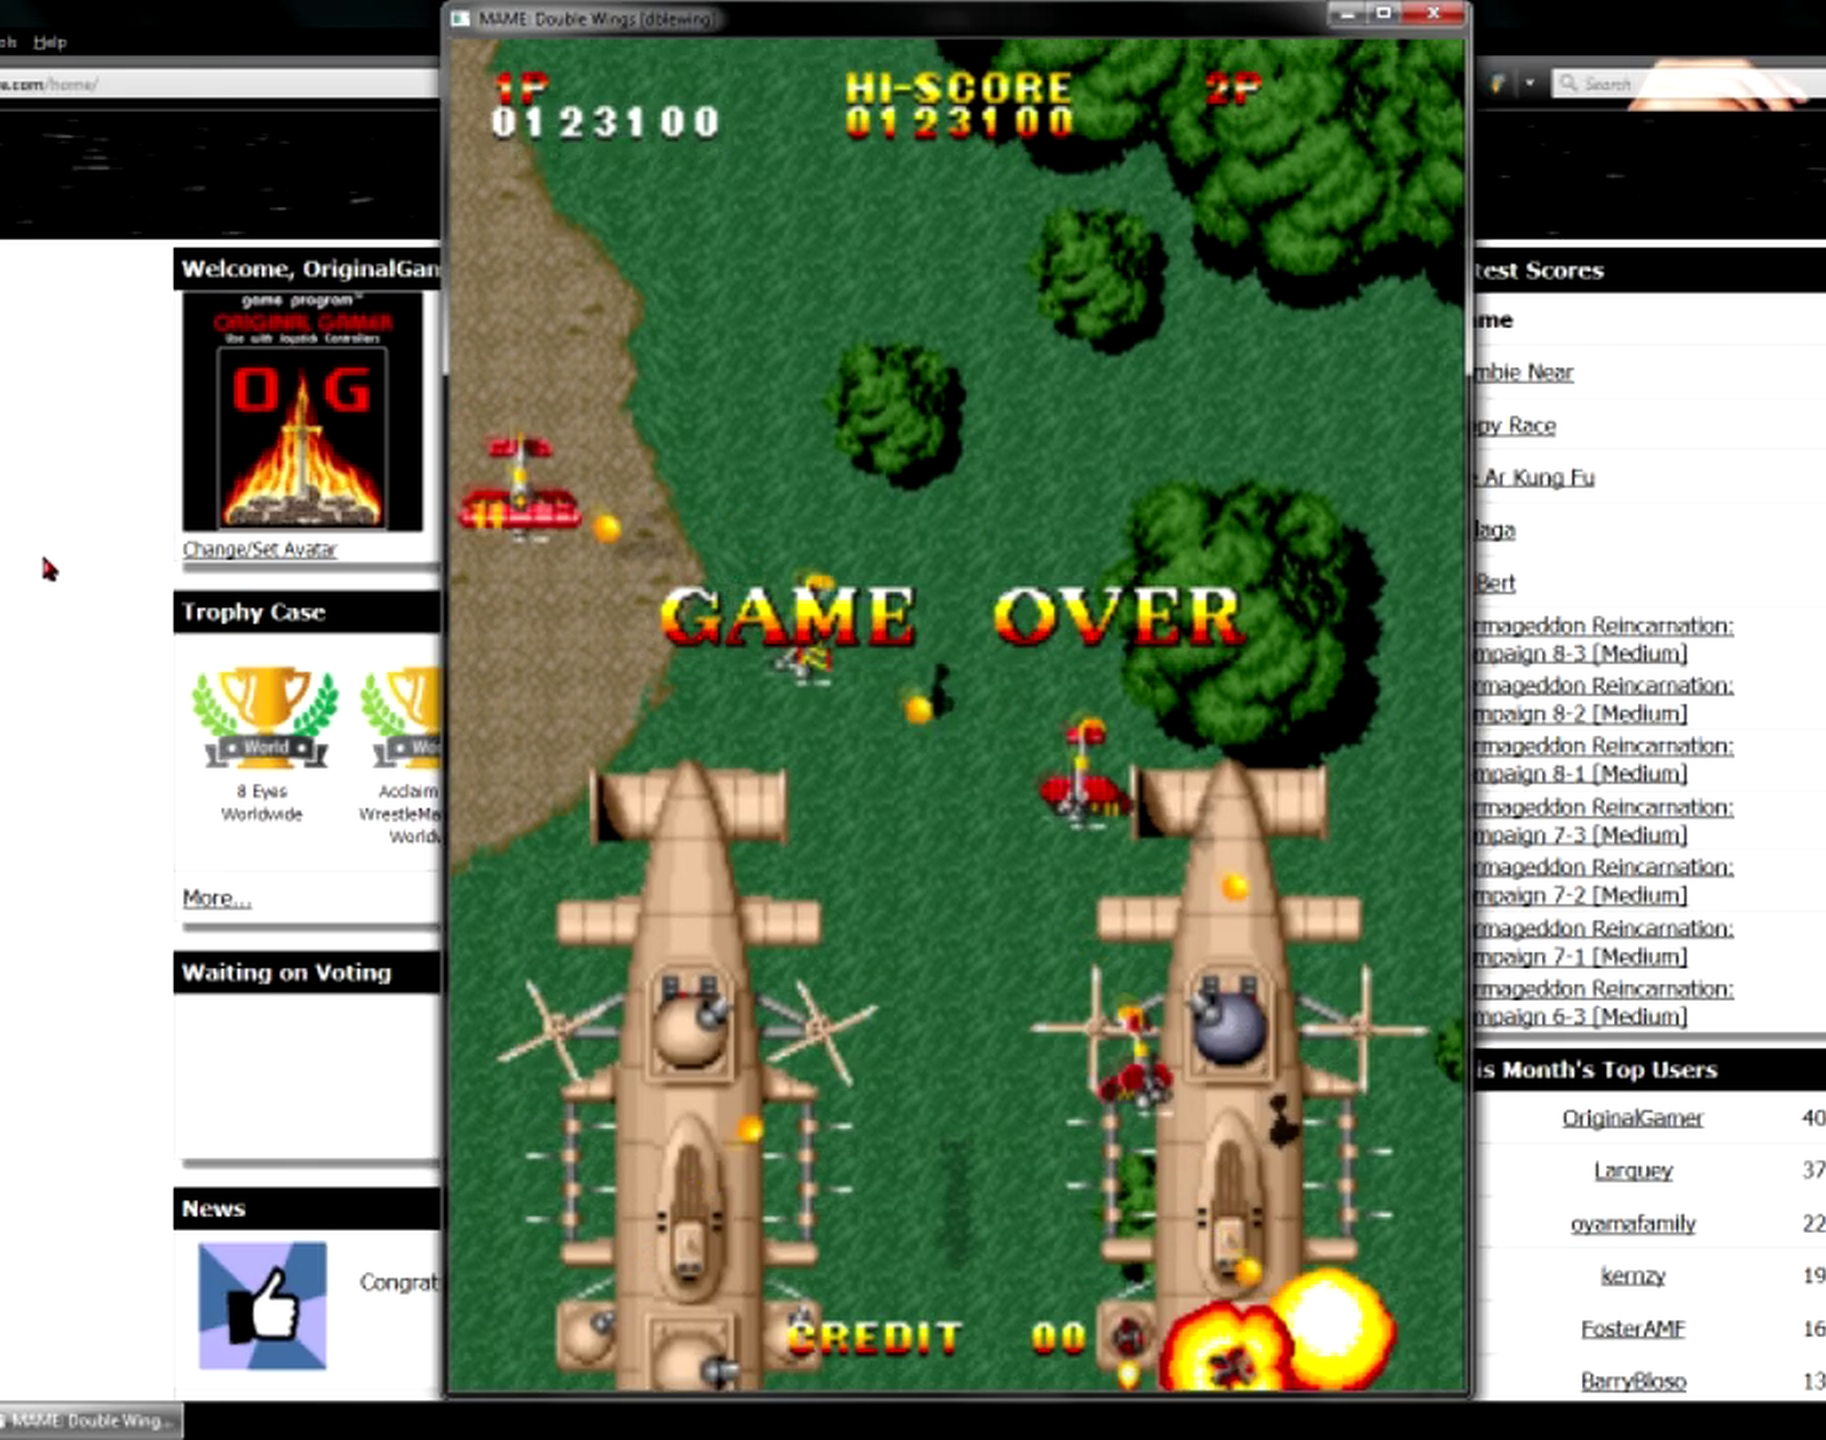 OriginalGamer: Double Wings [dblewing] (Arcade Emulated / M.A.M.E.) 123,100 points on 2015-05-27 20:07:42